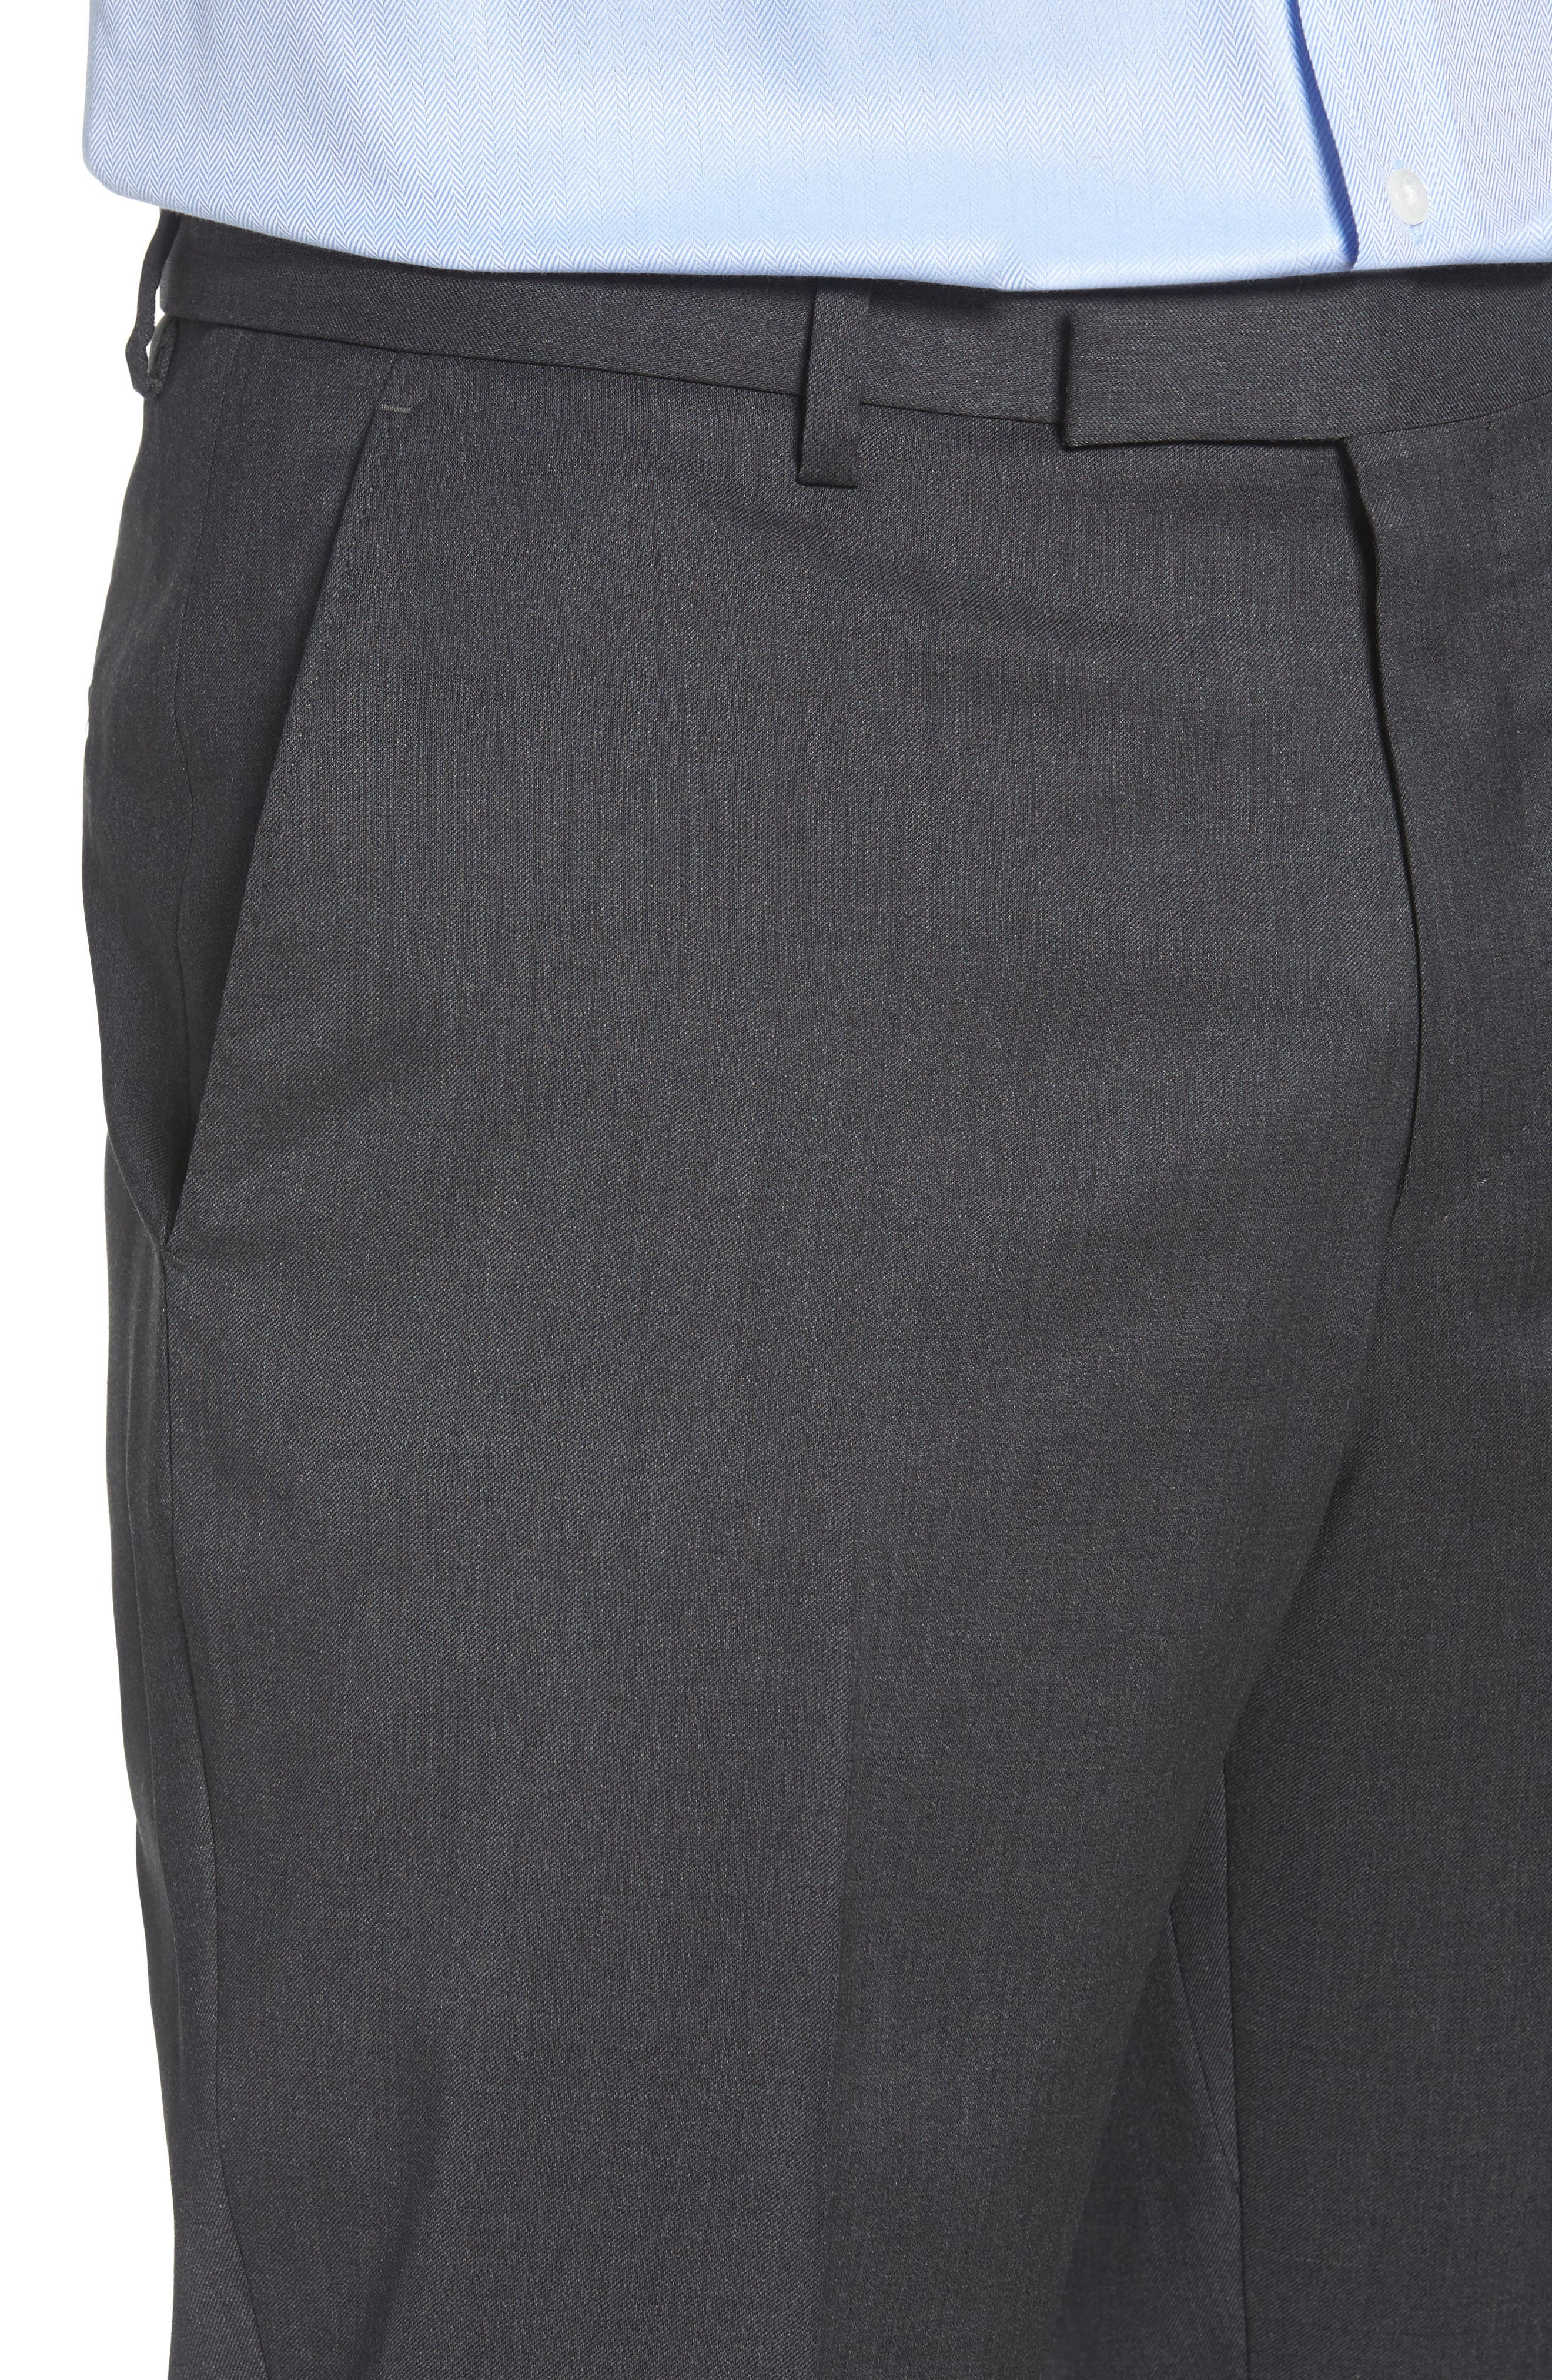 Leenon Flat Front Regular Fit Solid Wool Trousers,                             Alternate thumbnail 4, color,                             CHARCOAL